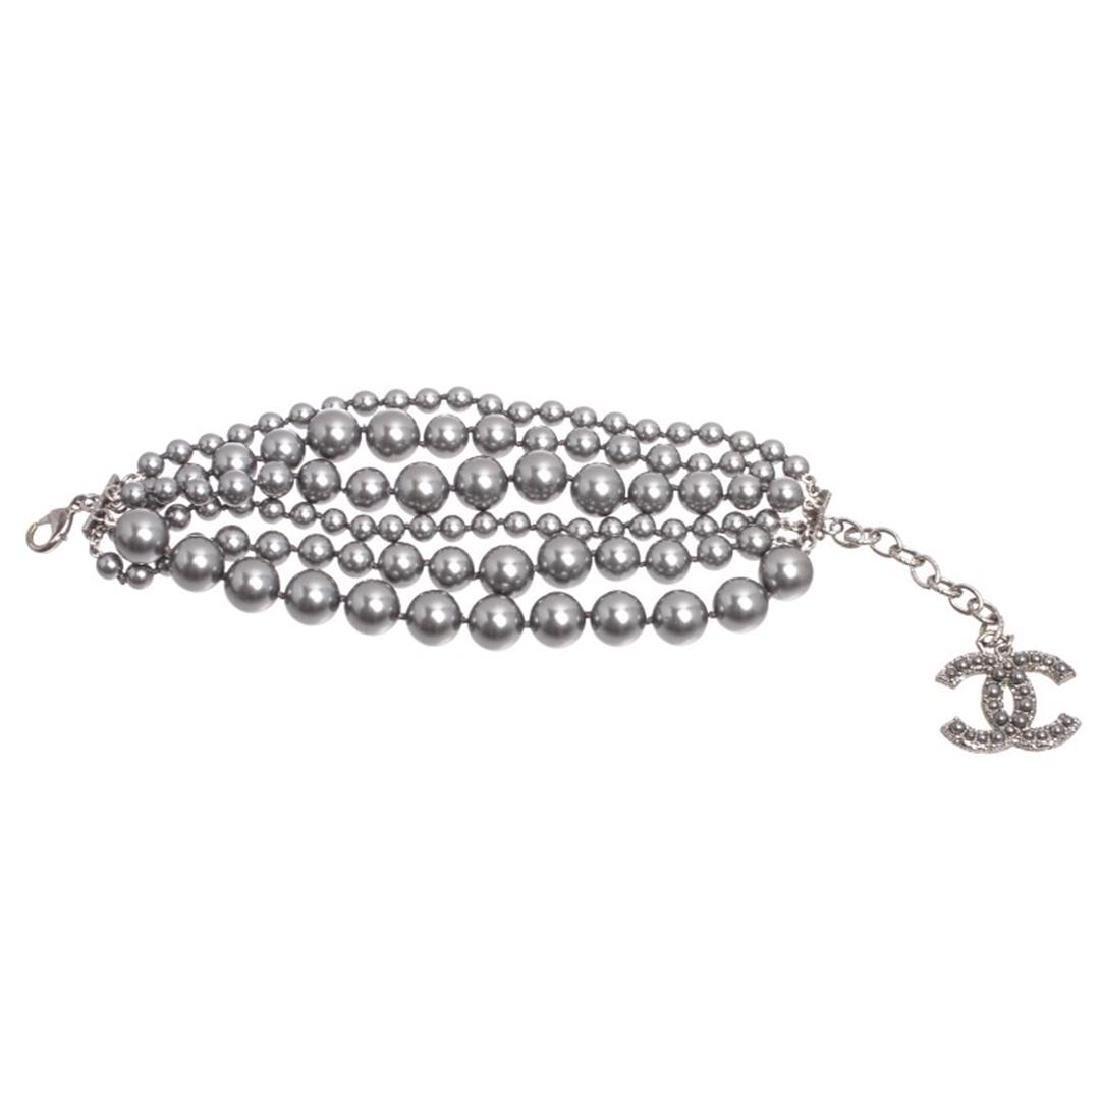 Chanel Metallic Gray Six Strand Faux Pearl Bracelet